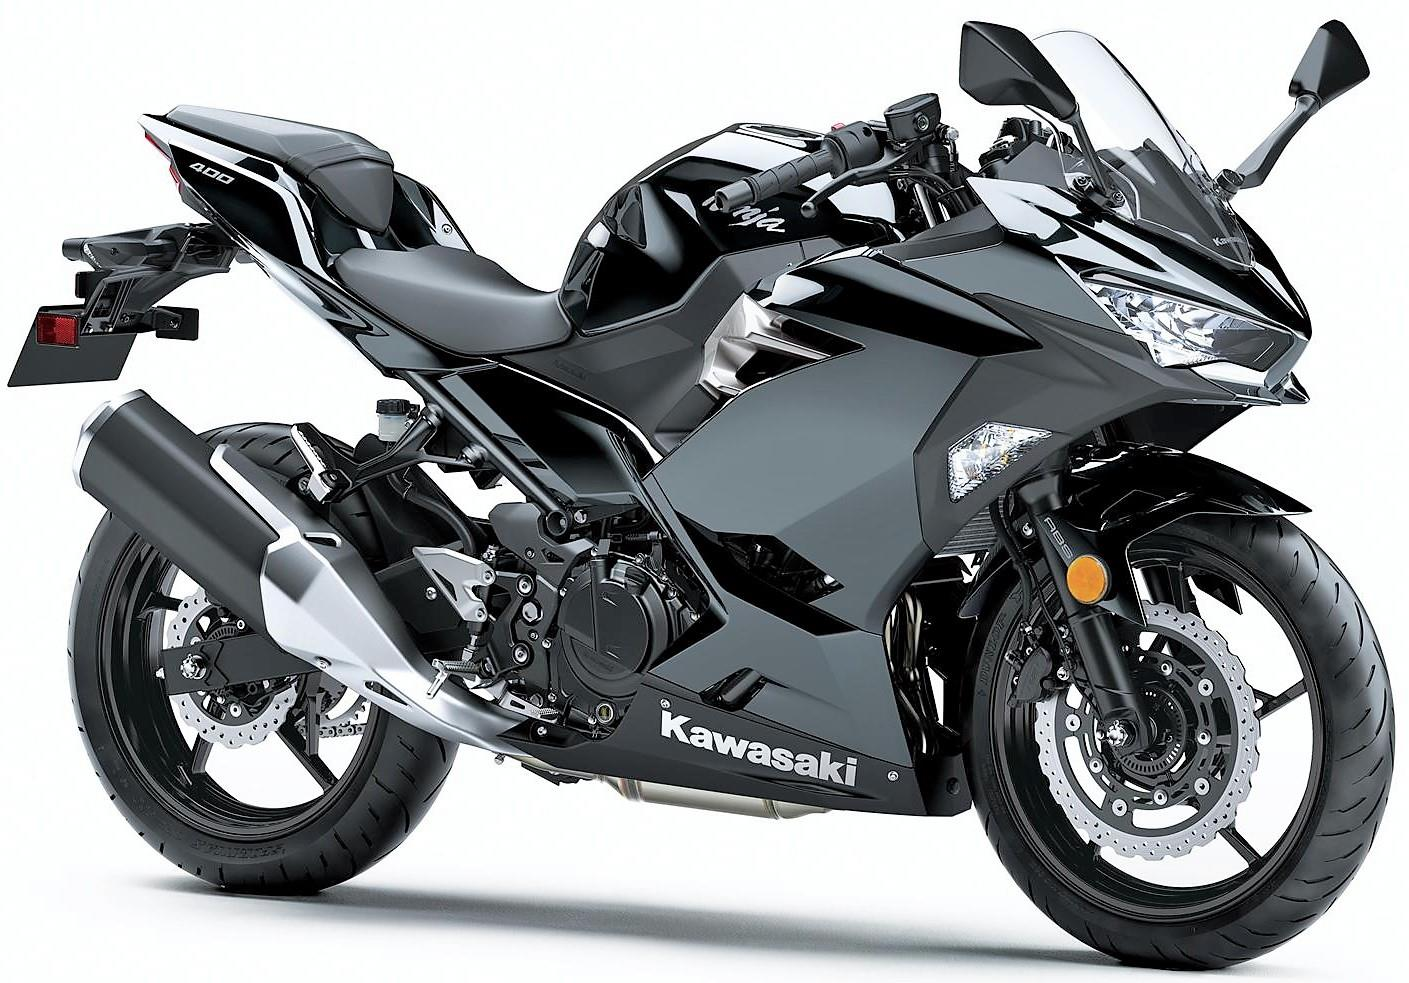 kawasaki black singles Official info for the 2018 z900rs - view specs, colors, photos, videos, brochure & reviews find dealer inventory, request a quote & more.